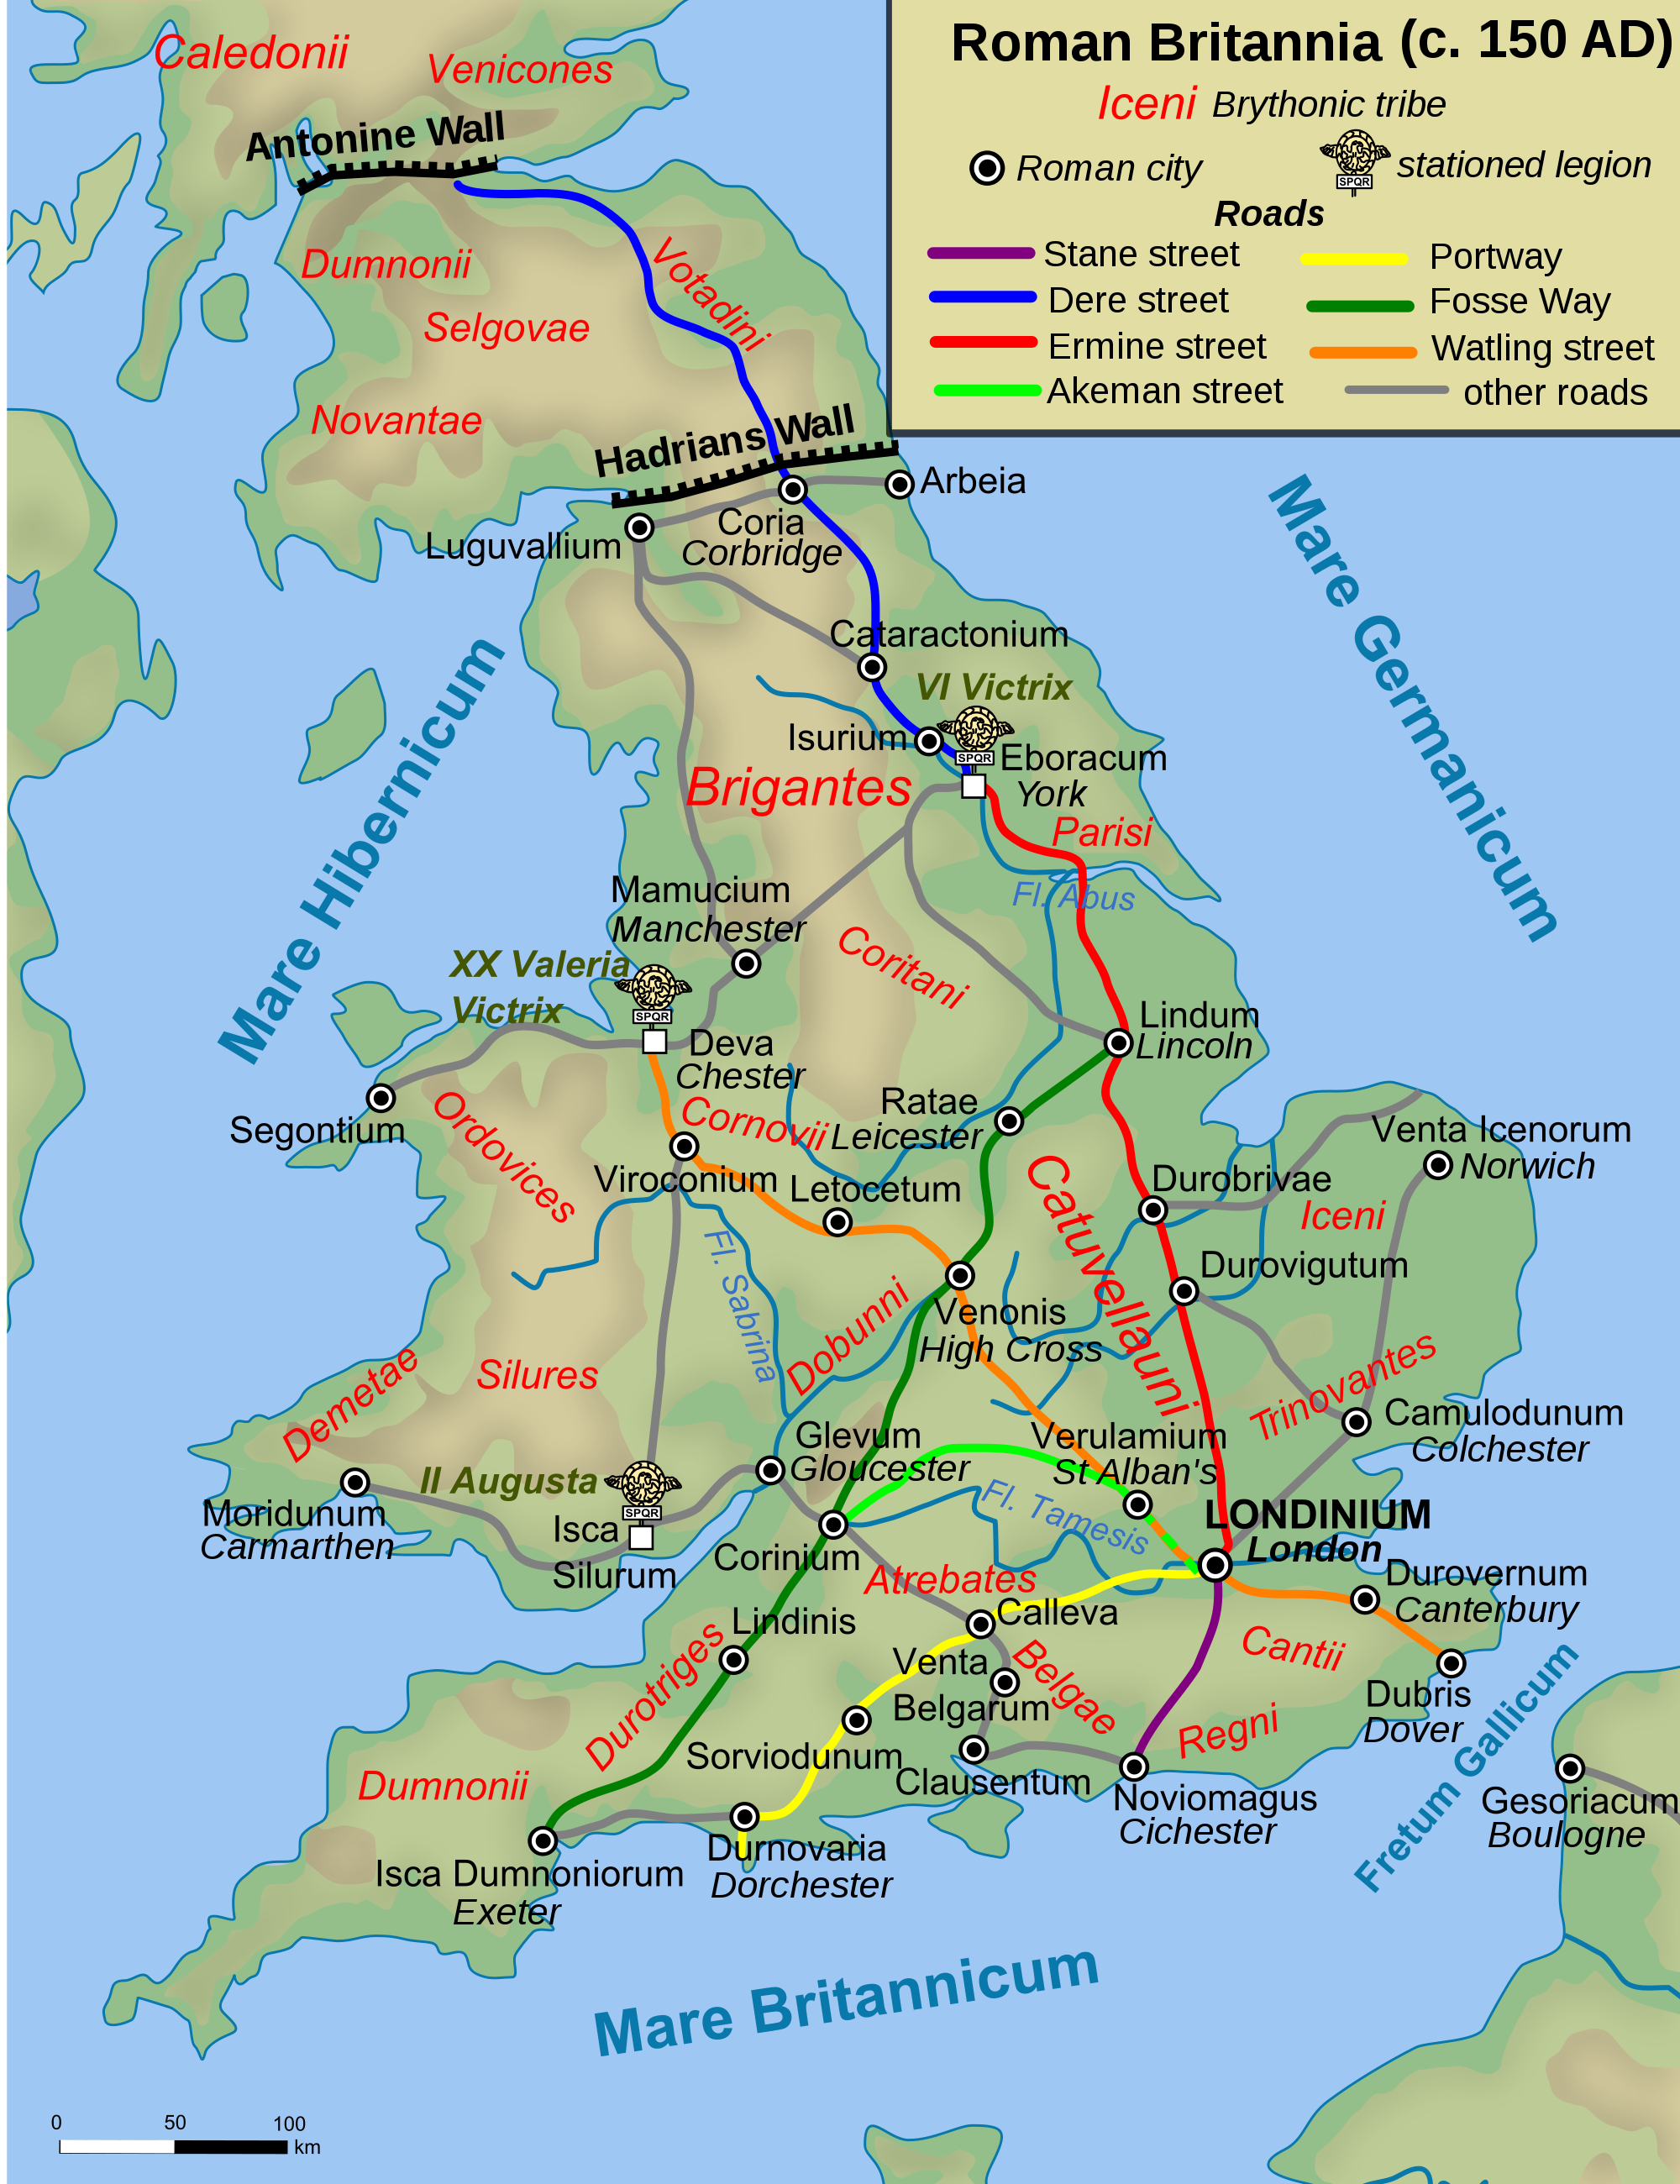 Roman Map Of Britain Map of Roman Britain, 150 AD (Illustration)   Ancient History  Roman Map Of Britain